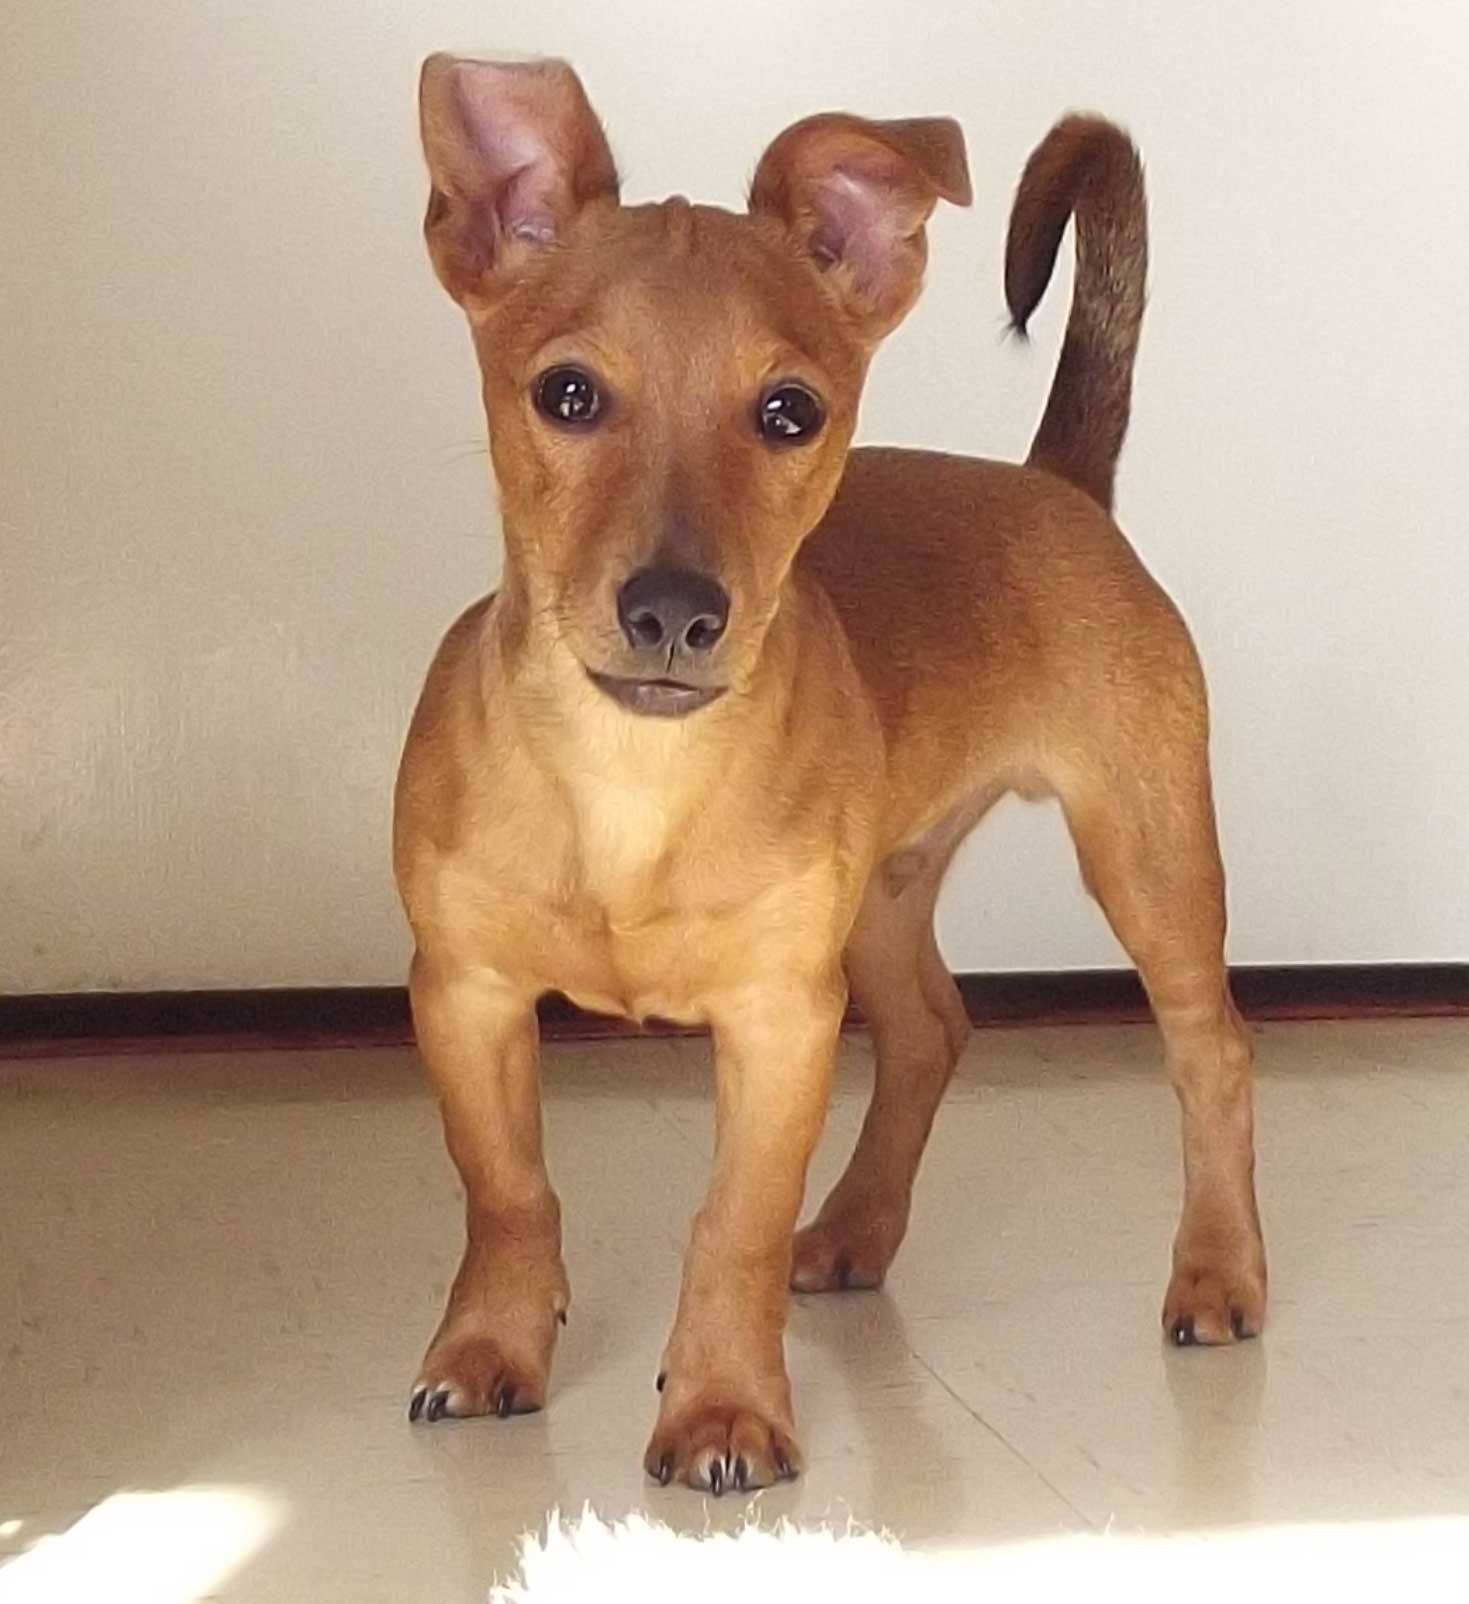 Adorable Brown Jackshund Jackshund Dog Breed Everything About Jack Russell Dachshund Mixes Why Do Dachshunds Shed So Much Do Dachshunds Shed Winter bark post Do Dachshunds Shed